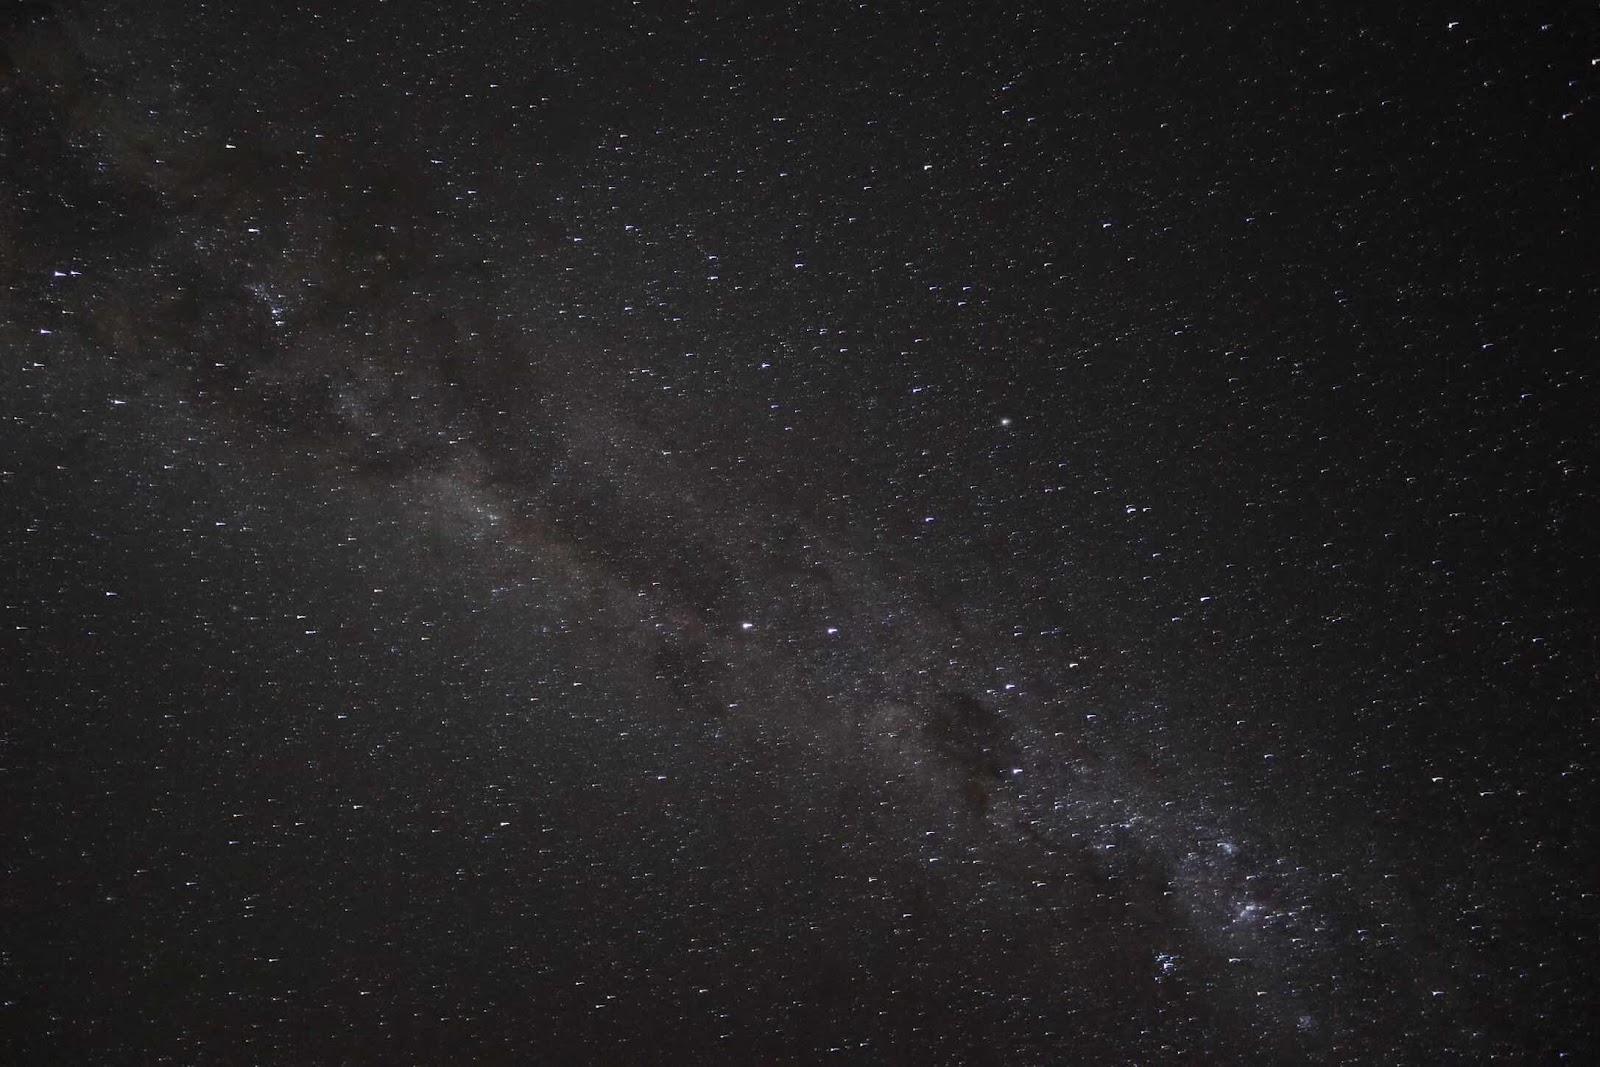 Milky Way, with dark patches, as seen from Atacama Desert, 200mm, 30 seconds (Source: Palmia Observatory)